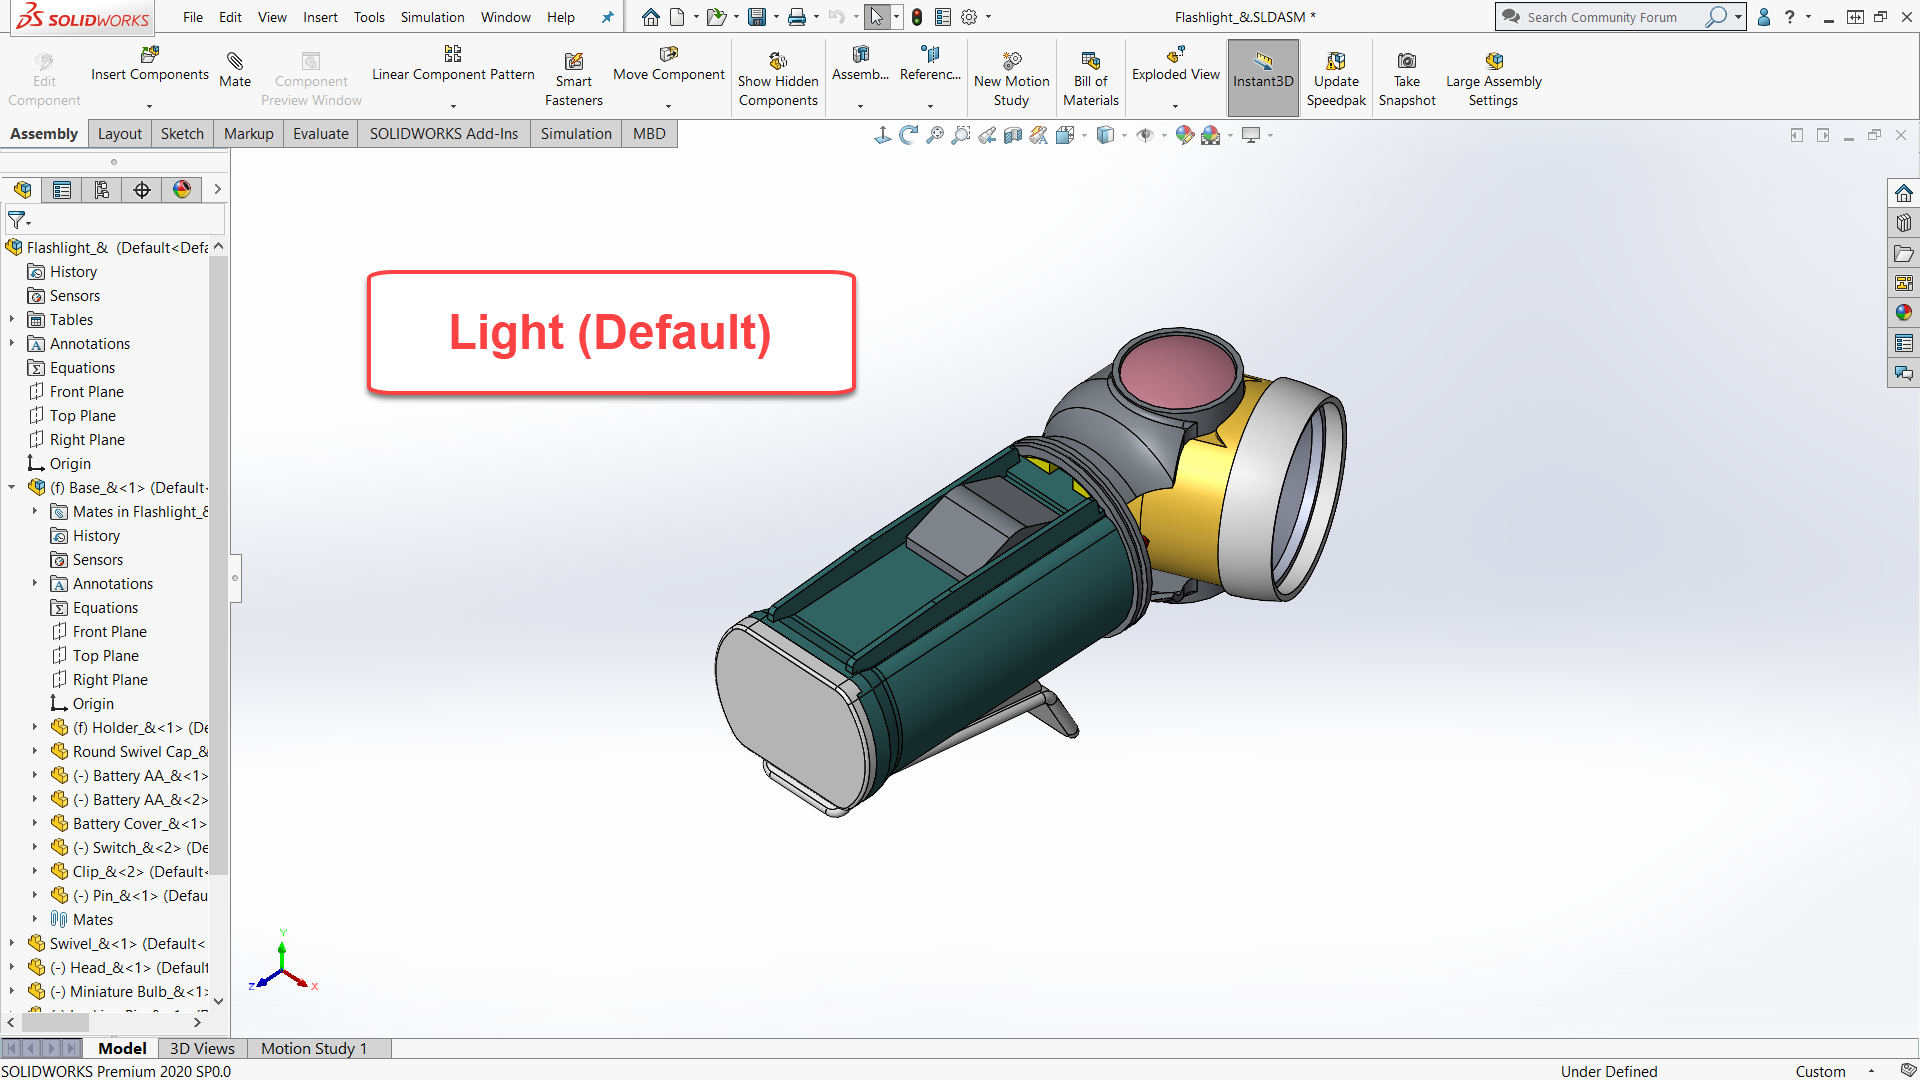 SOLIDWORKS light background